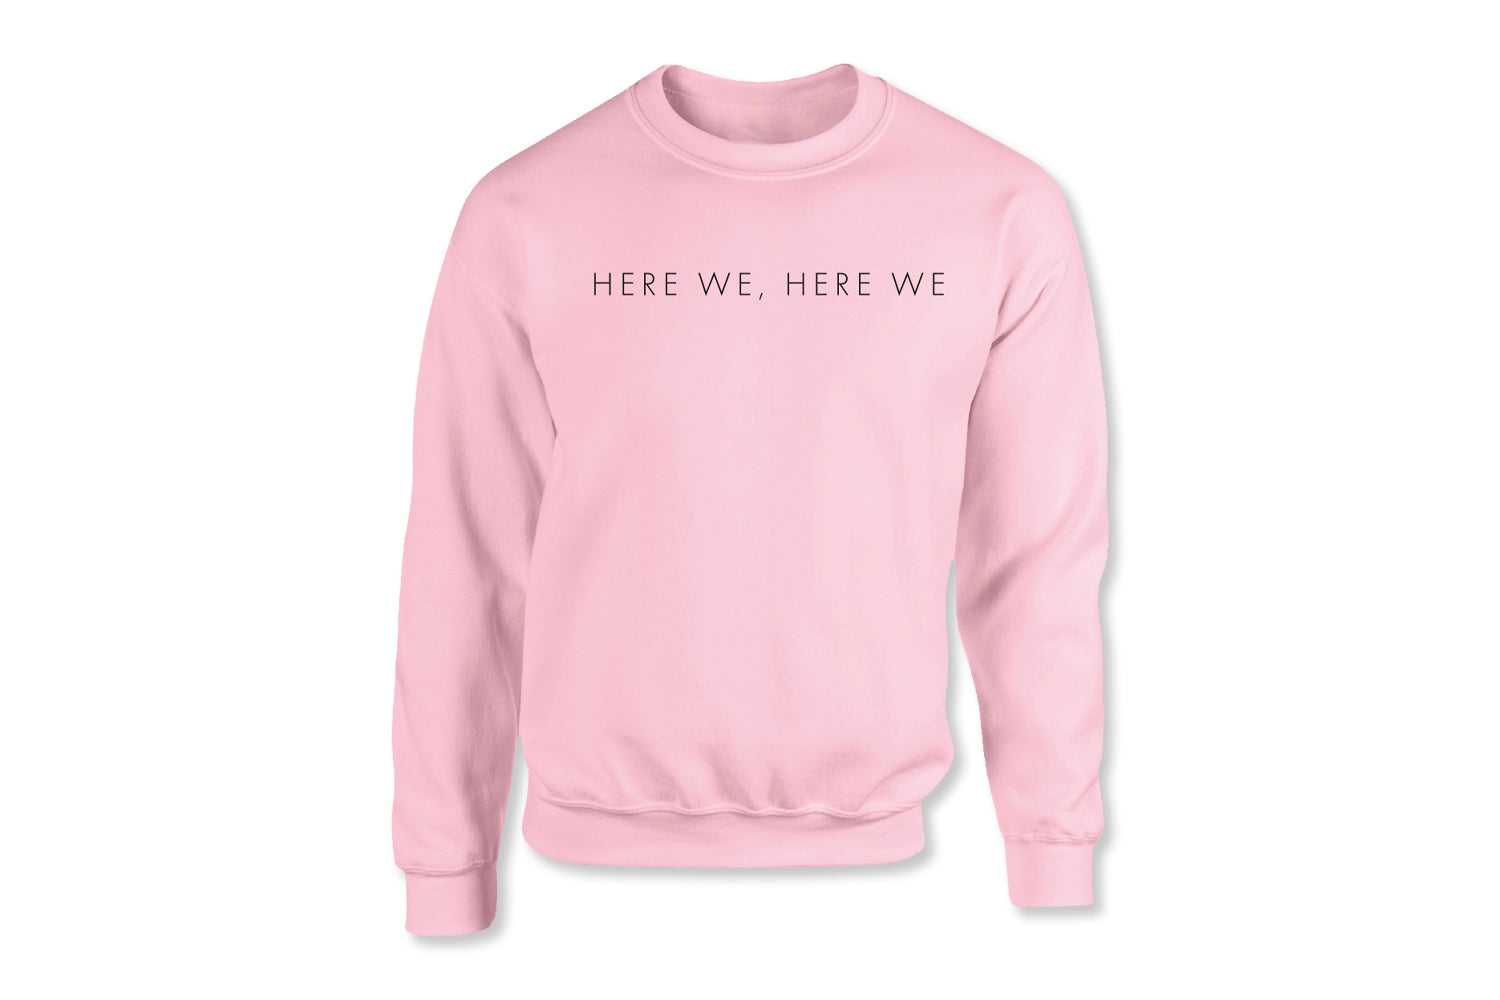 Here We Pink Sweatshirt